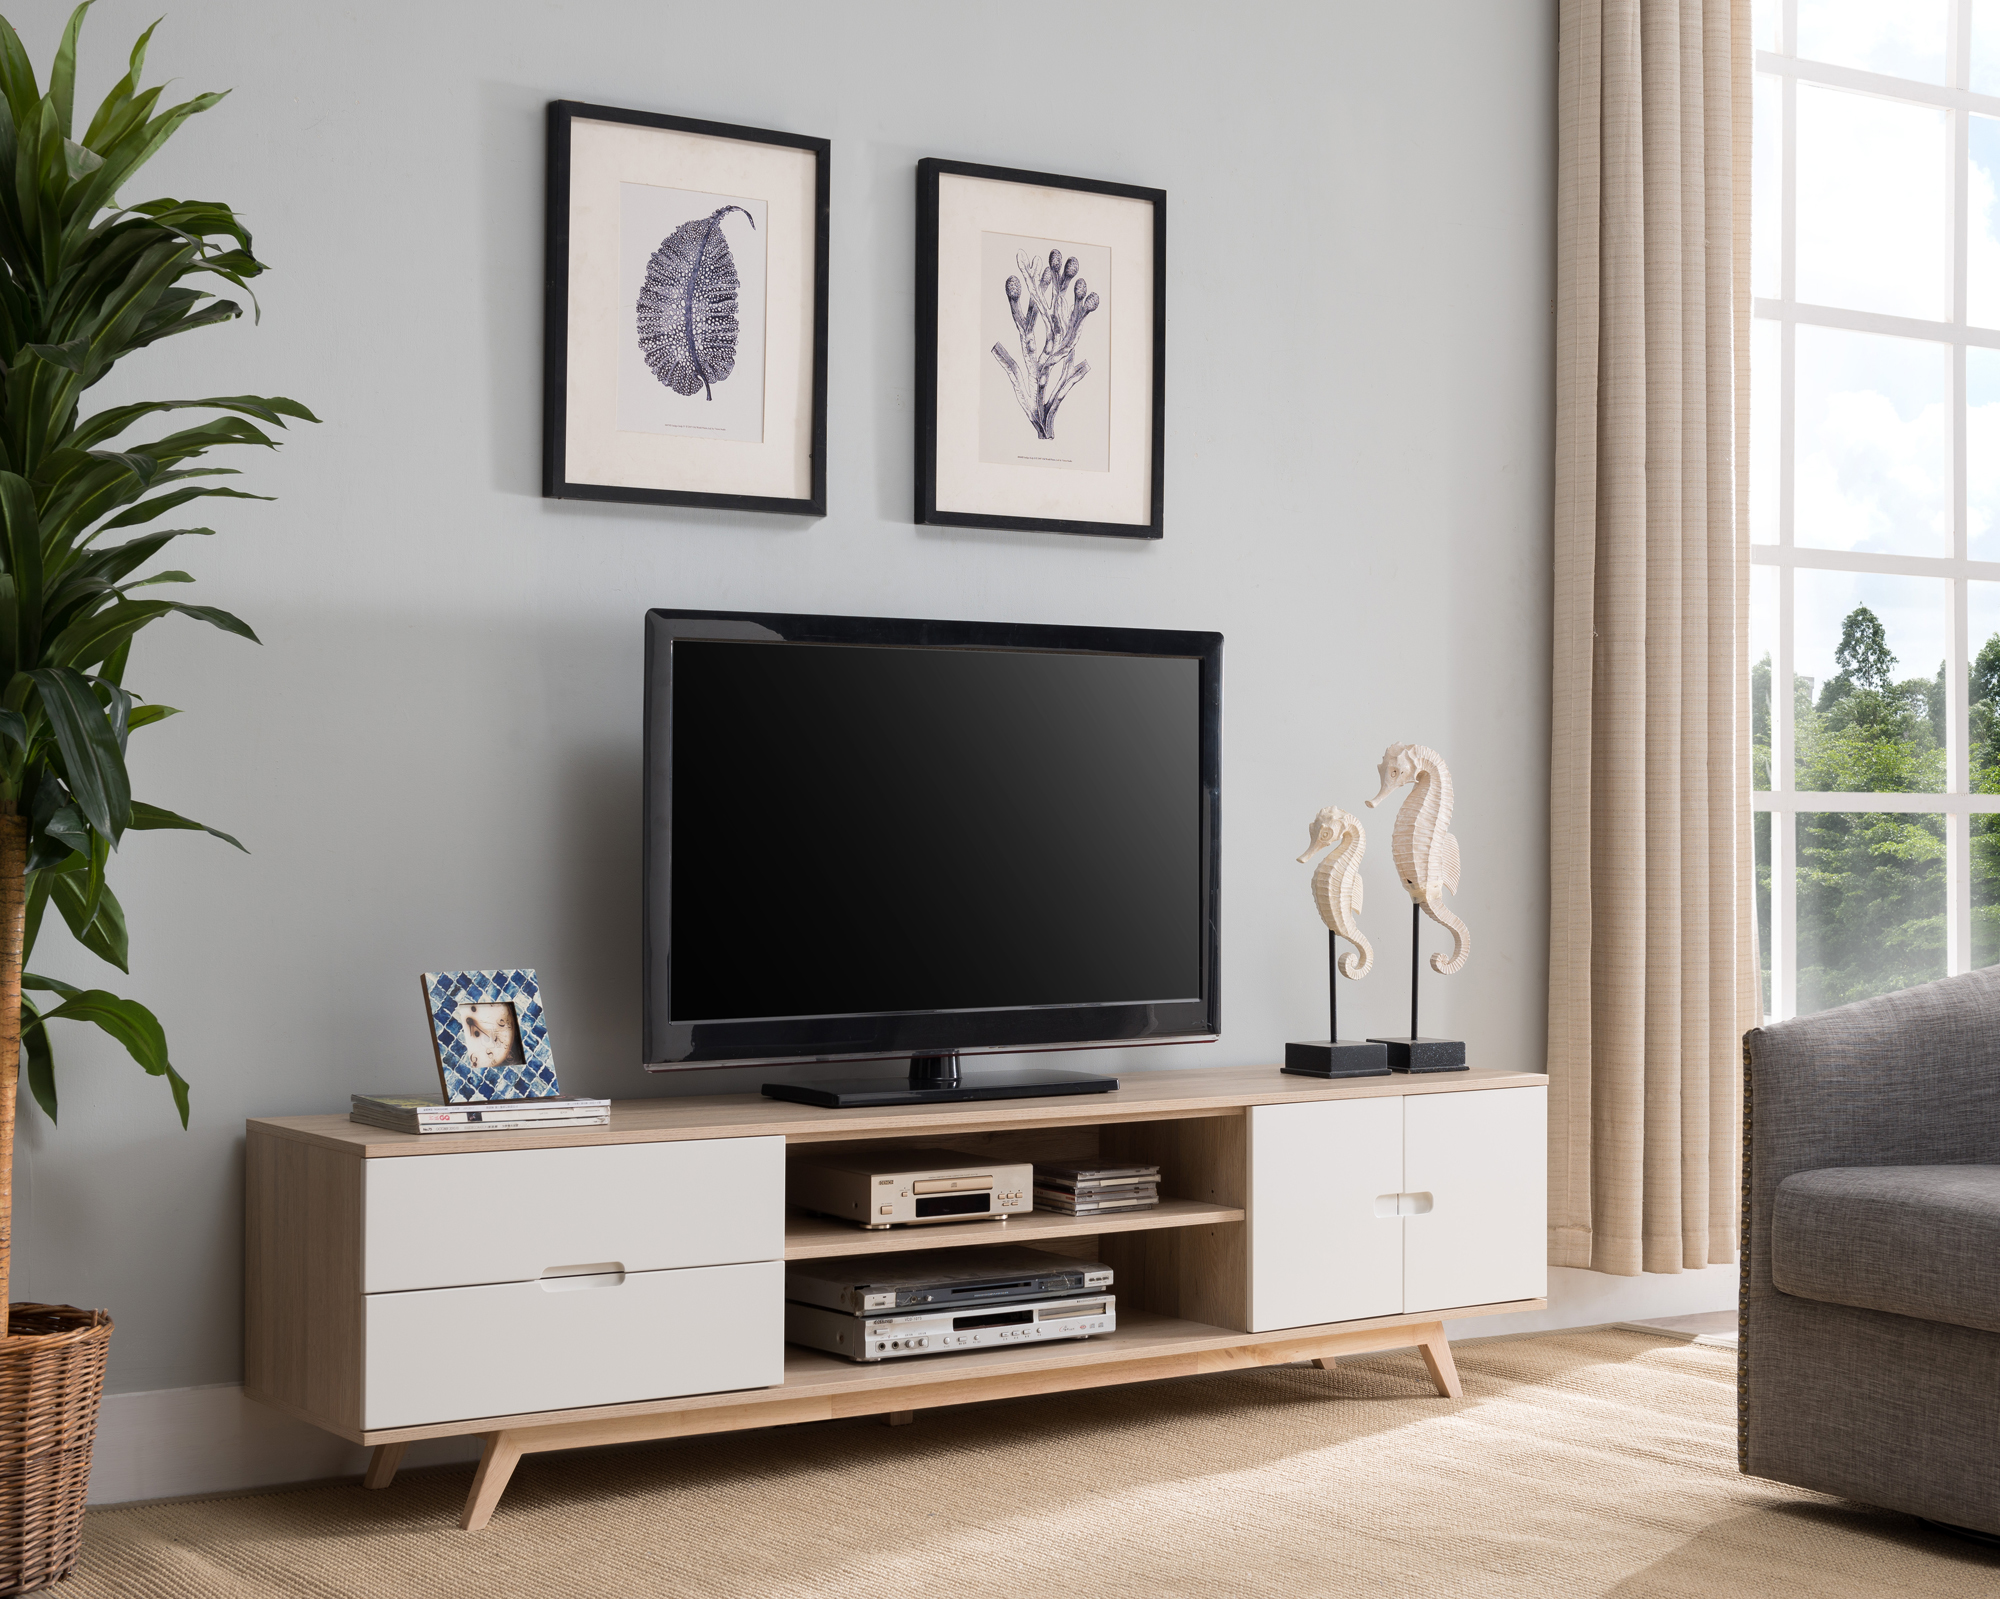 NEW 200cm Nova European Style Entertainment Unit KD Furniture TV ...